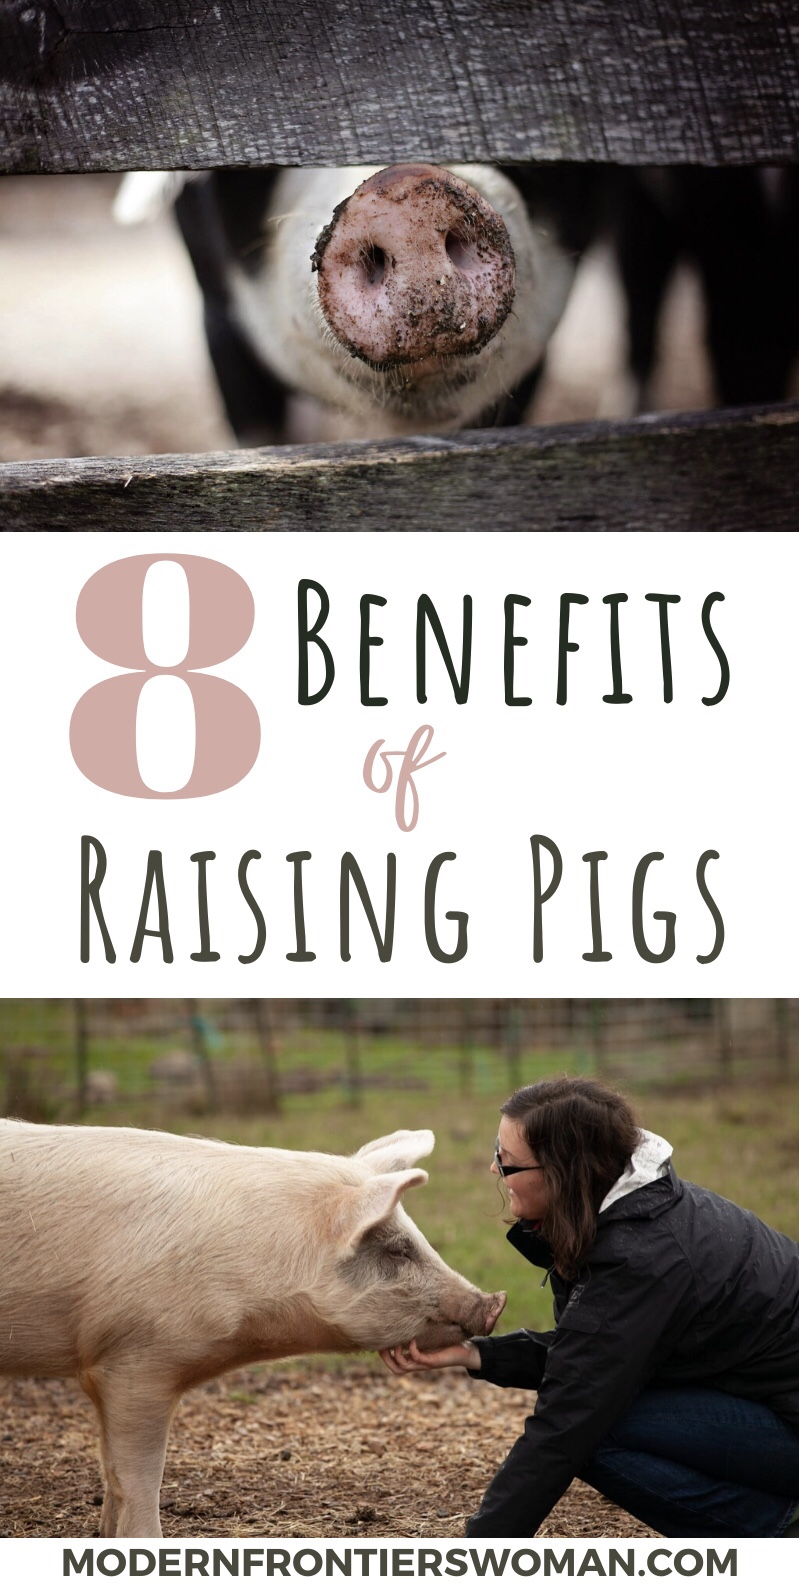 8 Benefits of Raising Pigs